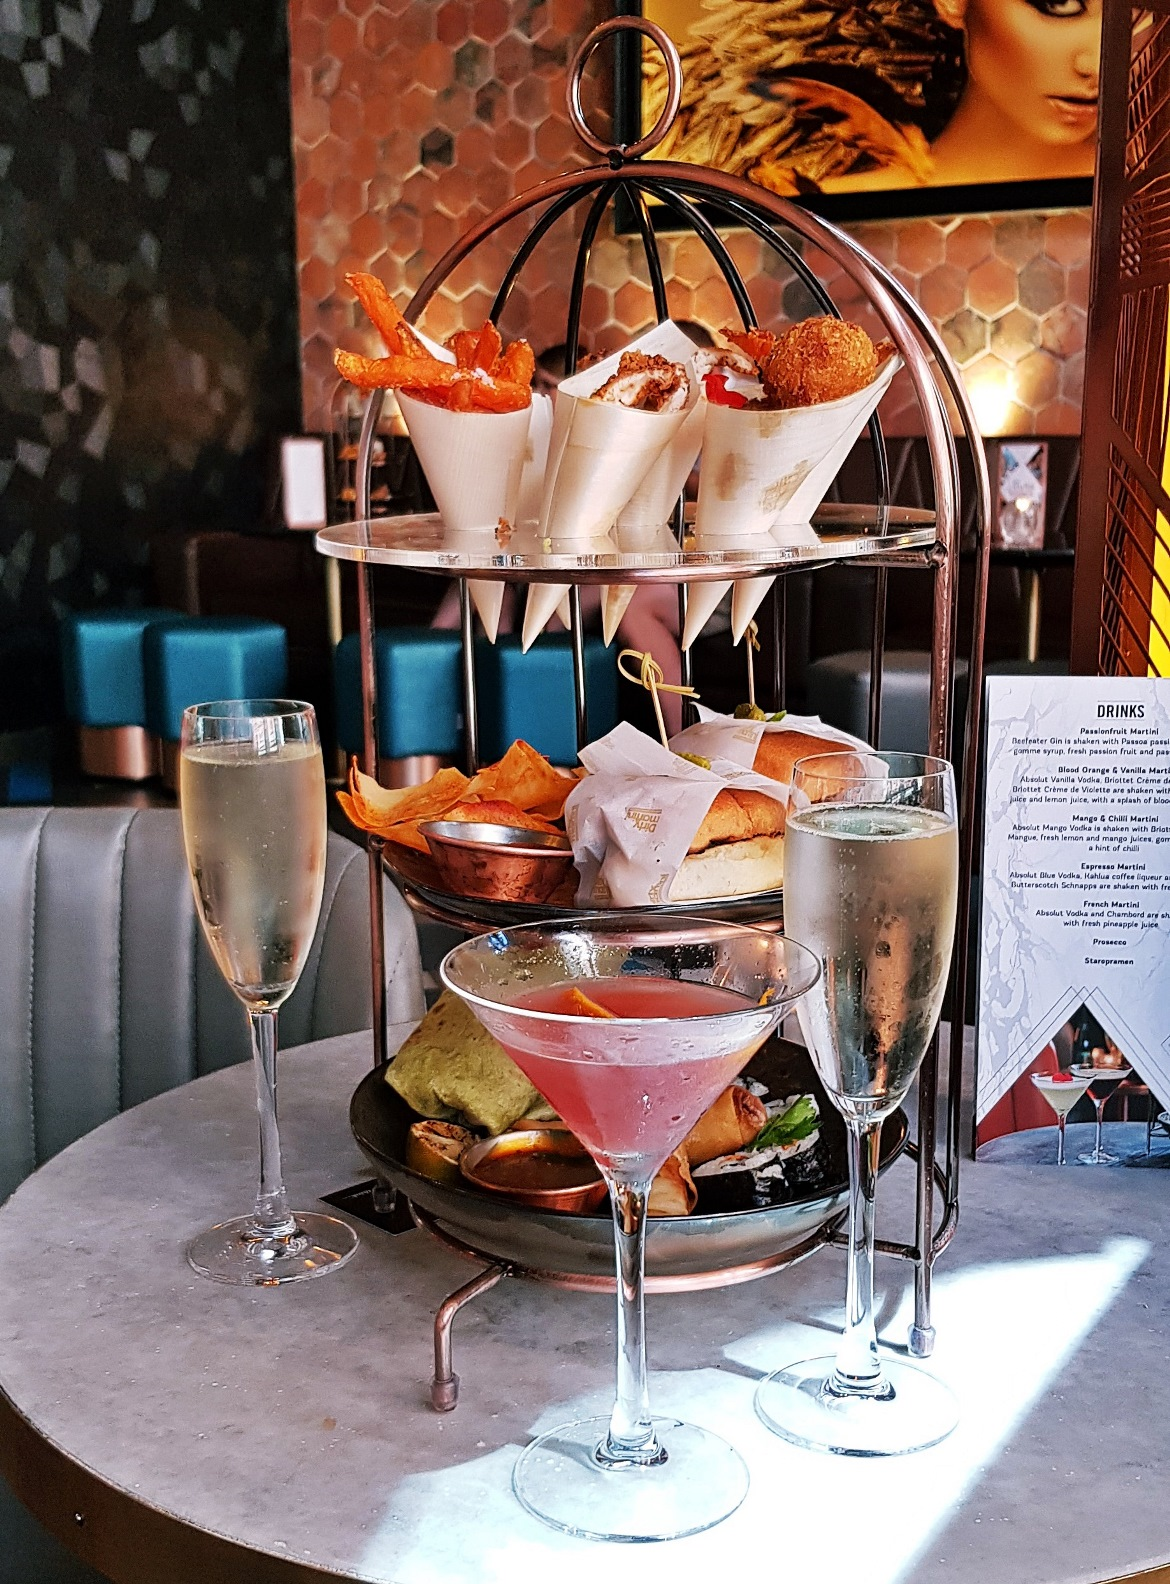 Food in a birdcage - Bottomless Brunch at Dirty Martini, review by BeckyBecky Blogs